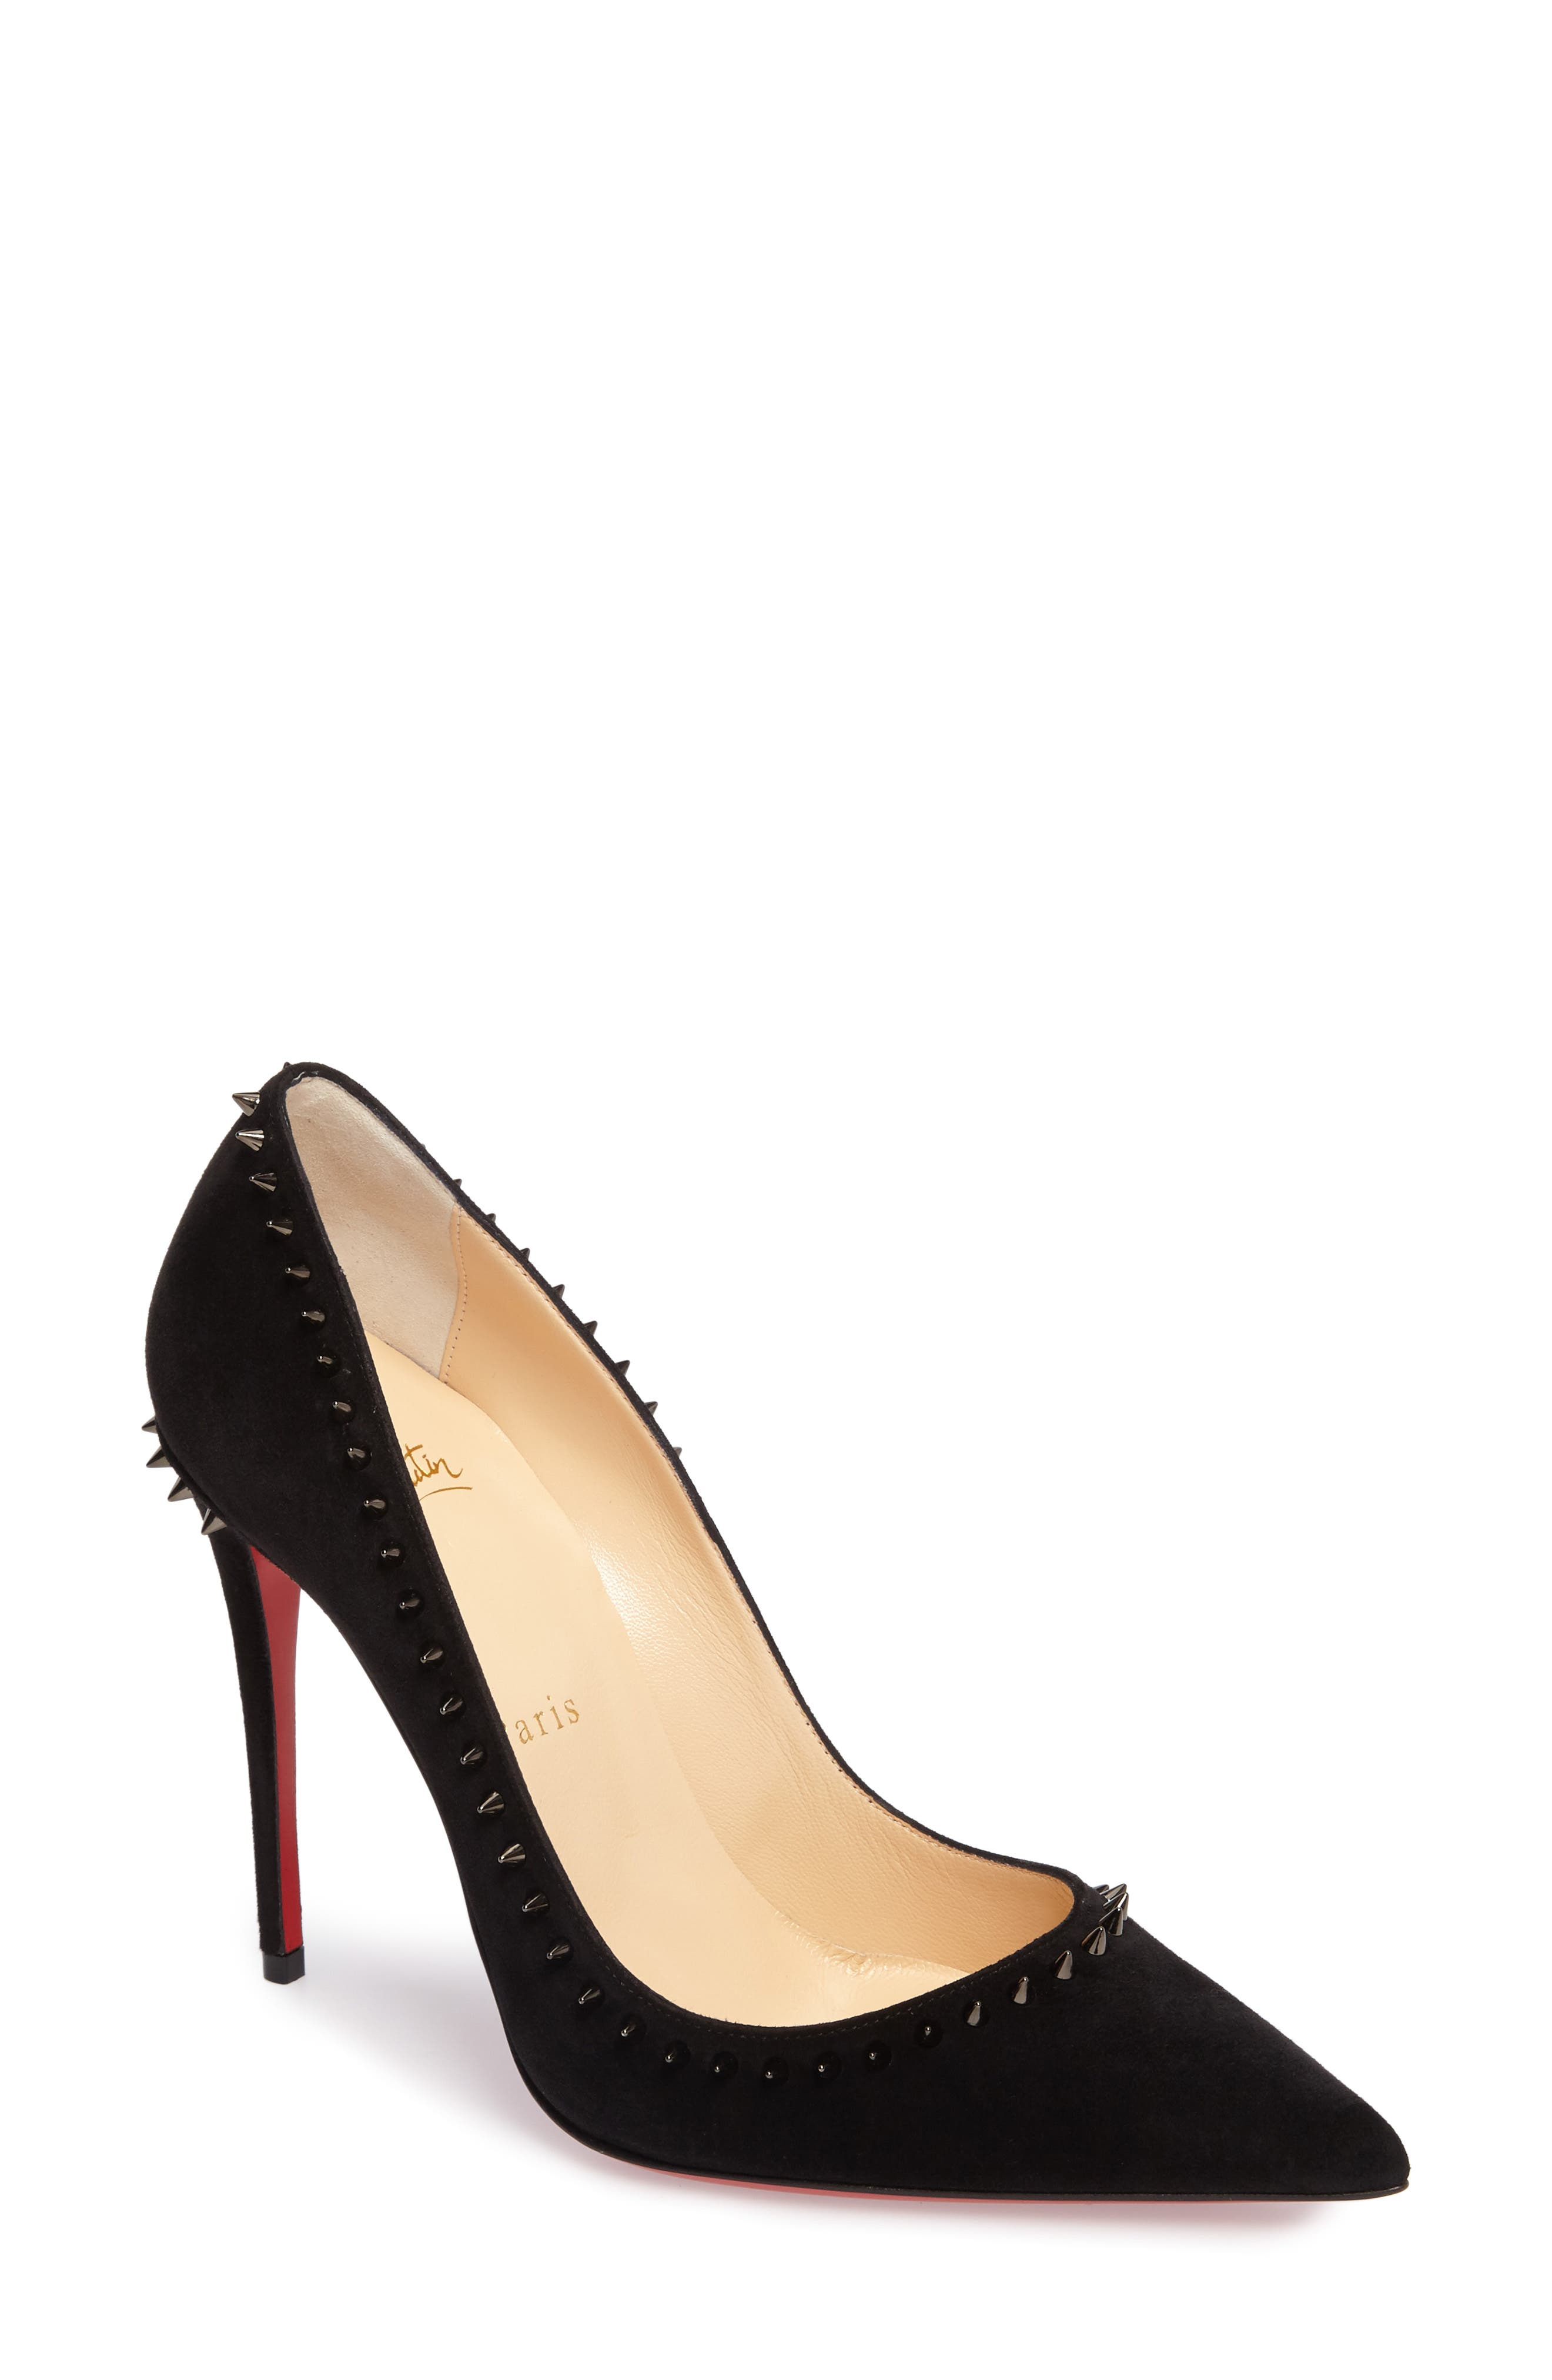 Alternate Image 1 Selected - Christian Louboutin Anjalina Pointy Toe Pump (Women)